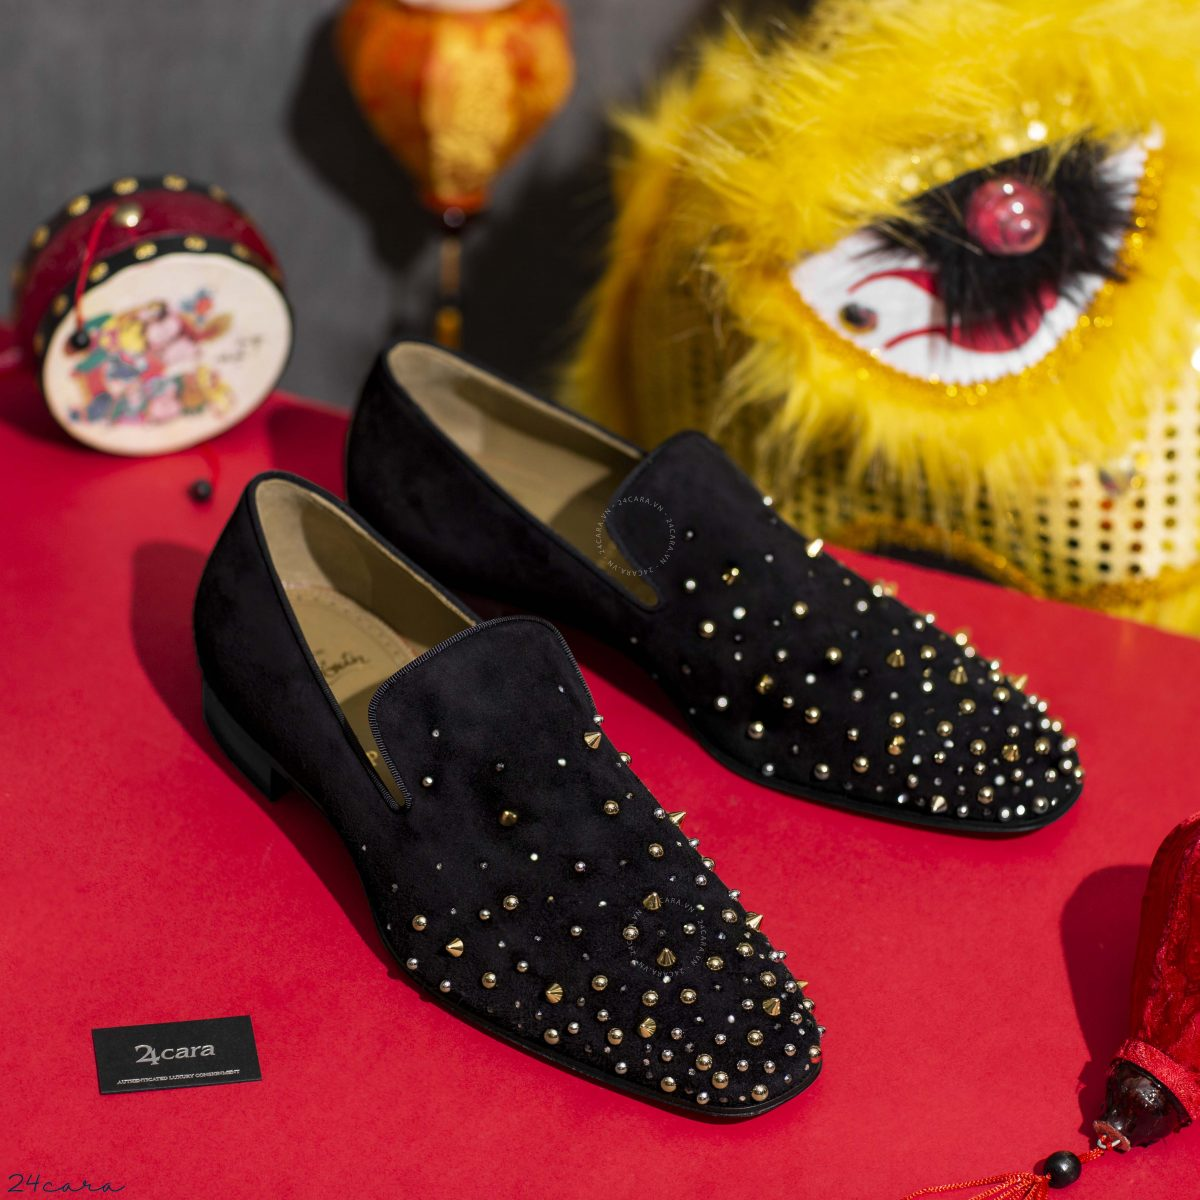 CHRISTIAN LOUBOUTIN MILKYLION FLAT BLACK SUEDE LOAFER